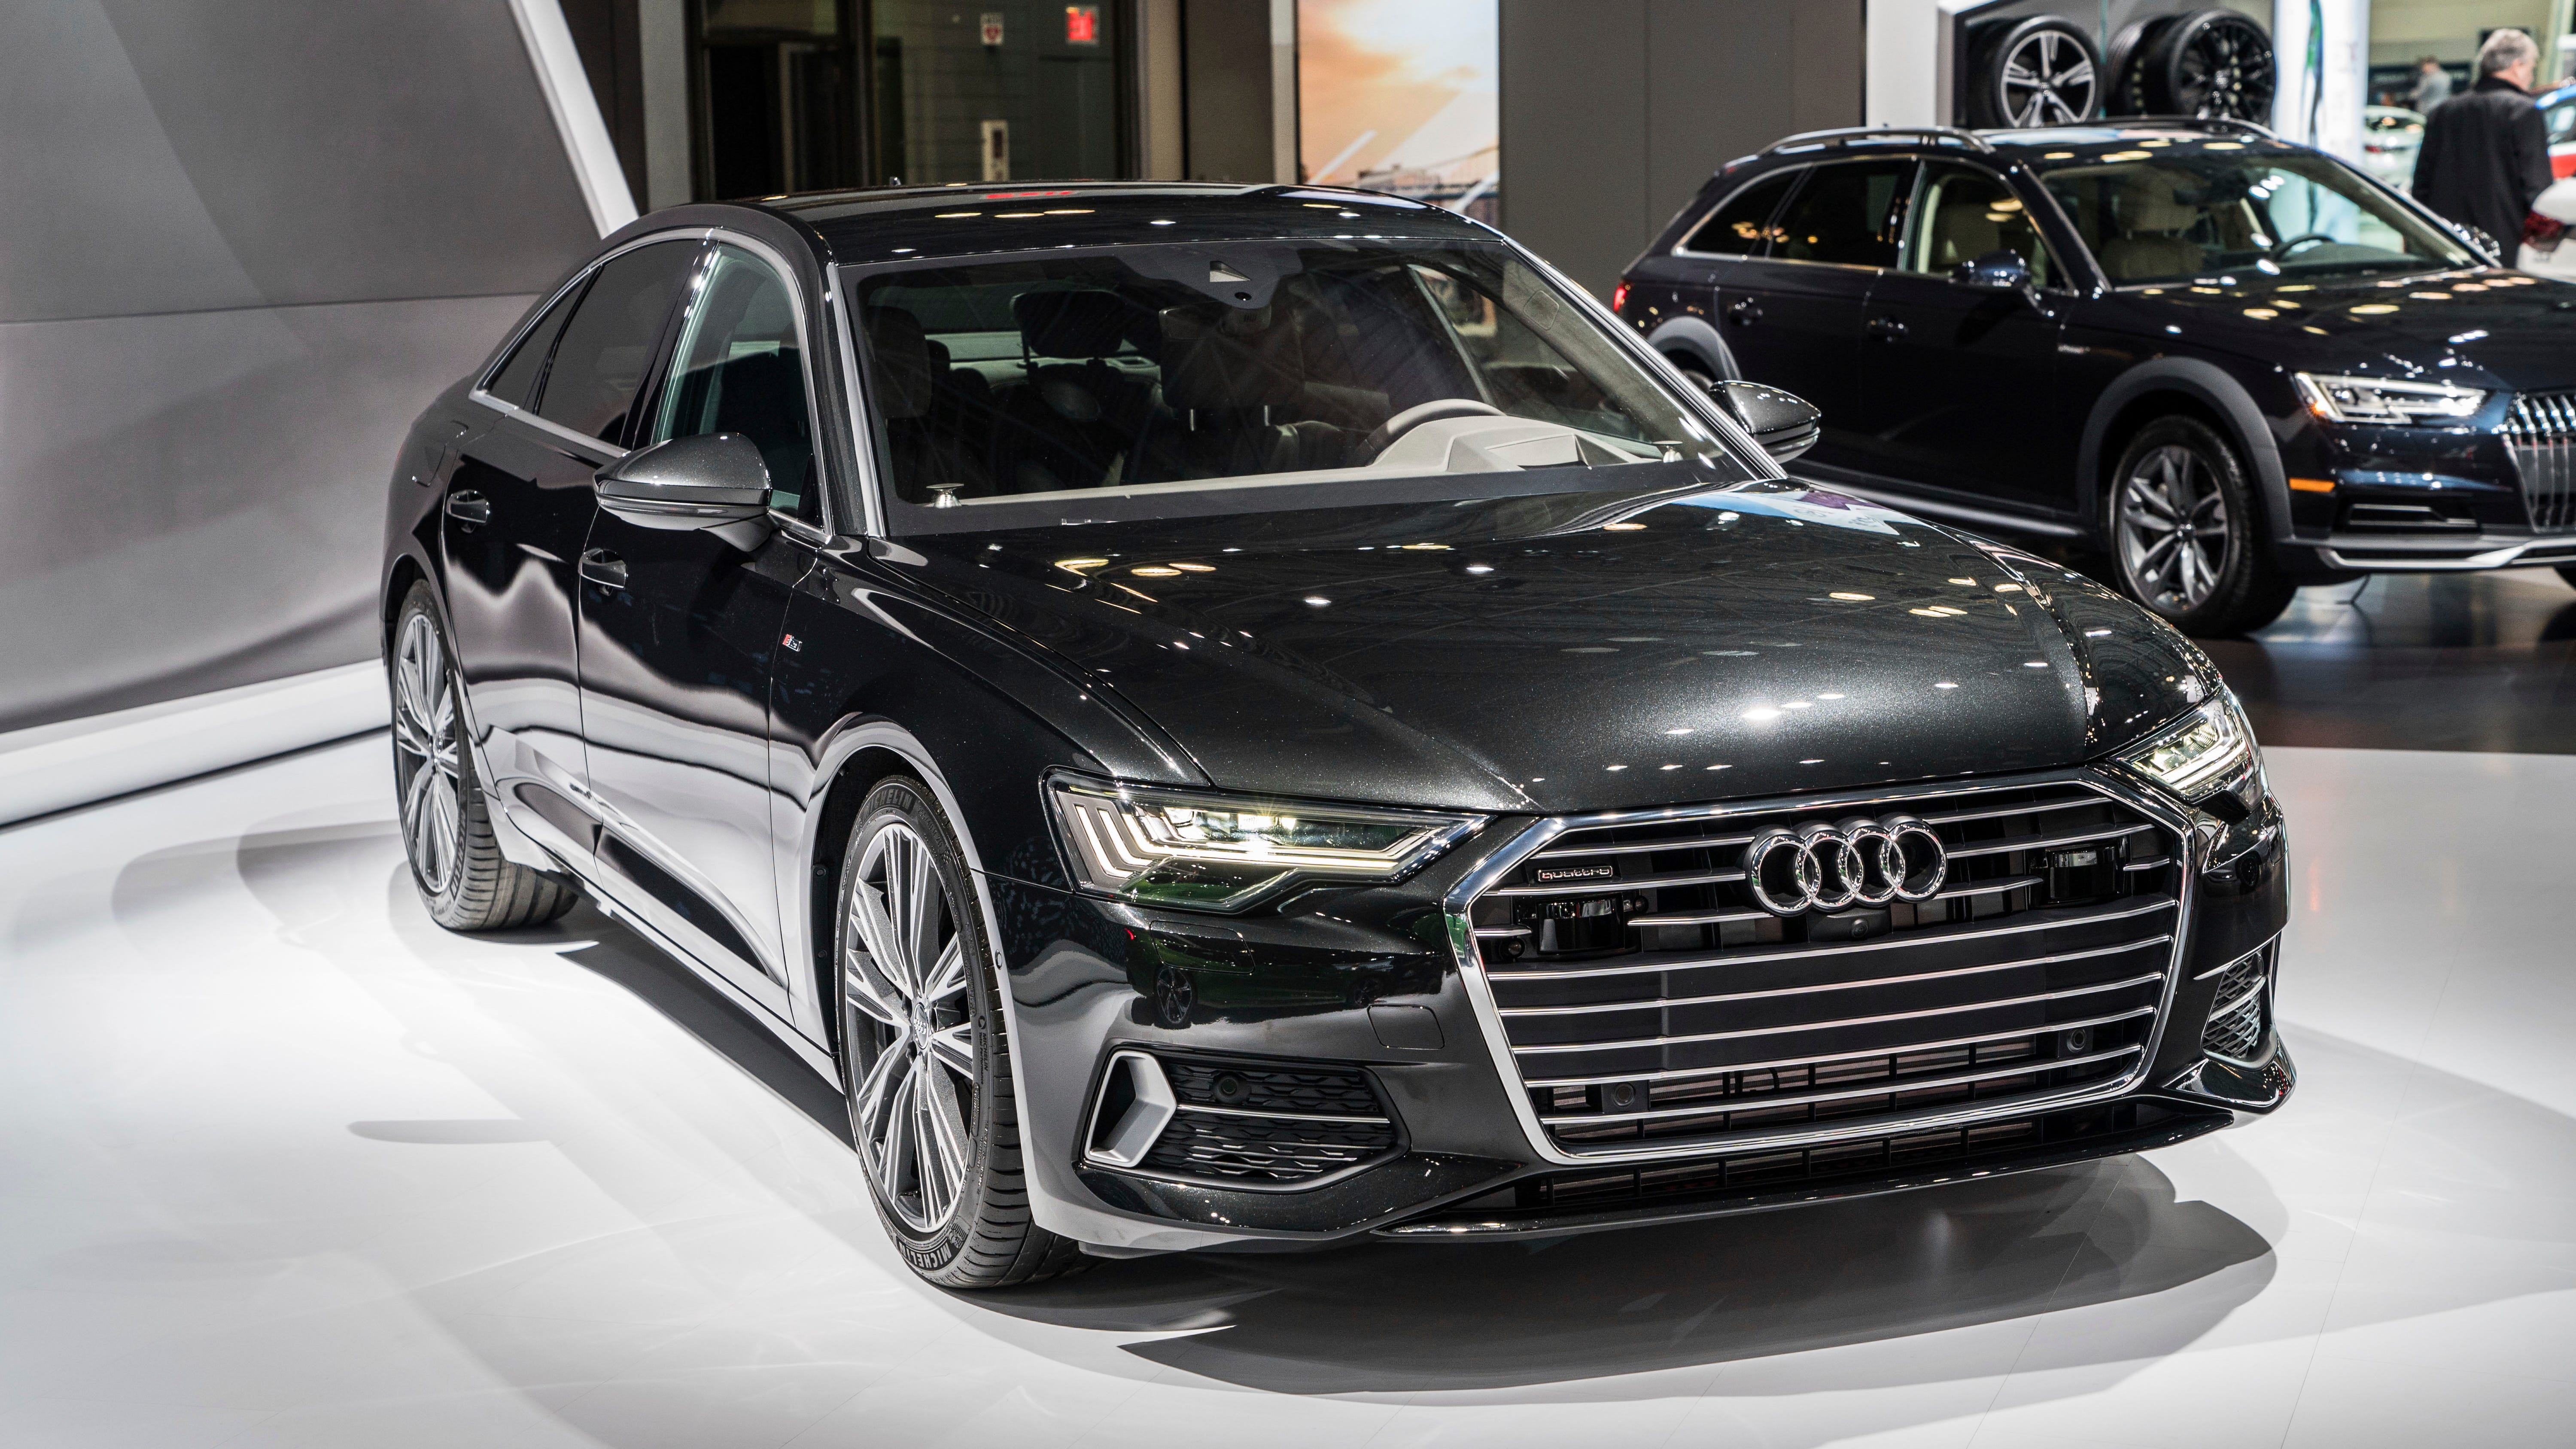 This undated photo provided by Audi shows the 2019 Audi A8. Magic Body Control from Mercedes-Benz scans the road ahead in order to react to bumps and ruts. In a fraction of a second, the system executes a specific suspension motion to counteract a road flaw in an effort to ride over it as though it were smooth and flat. Audi says it will have a similar system on the forthcoming 2019 A8 sedan. (Courtesy of Audi AG via AP)